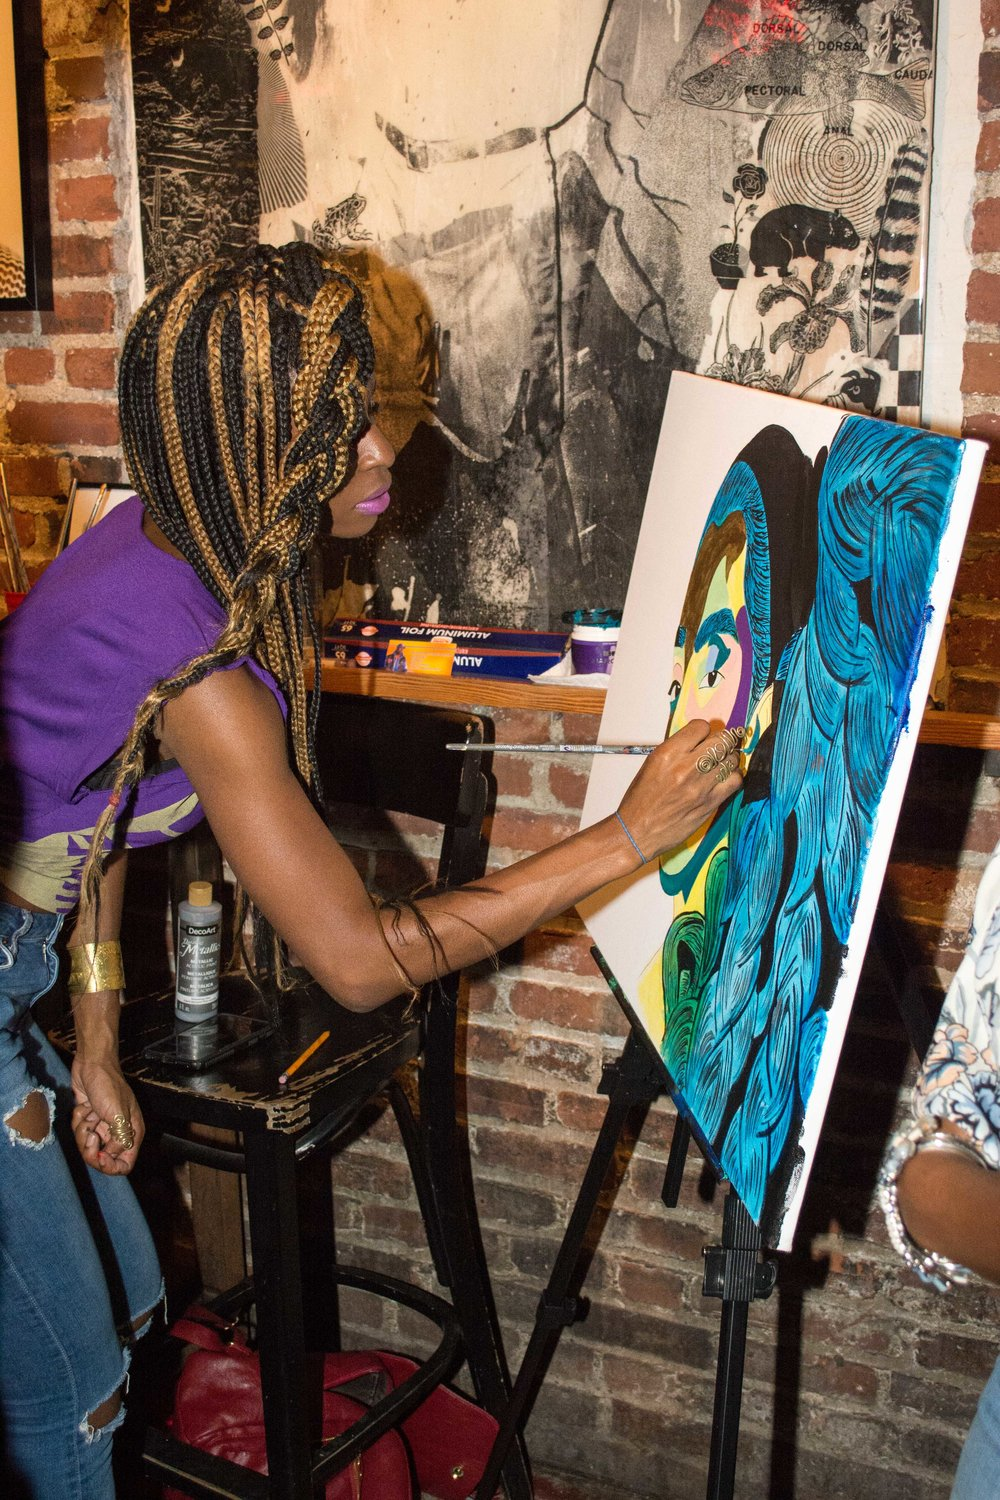 Live Painting - On Sept. 23rd Tiffany B Chanel live painted at Chaunna Michole photo exhibit called